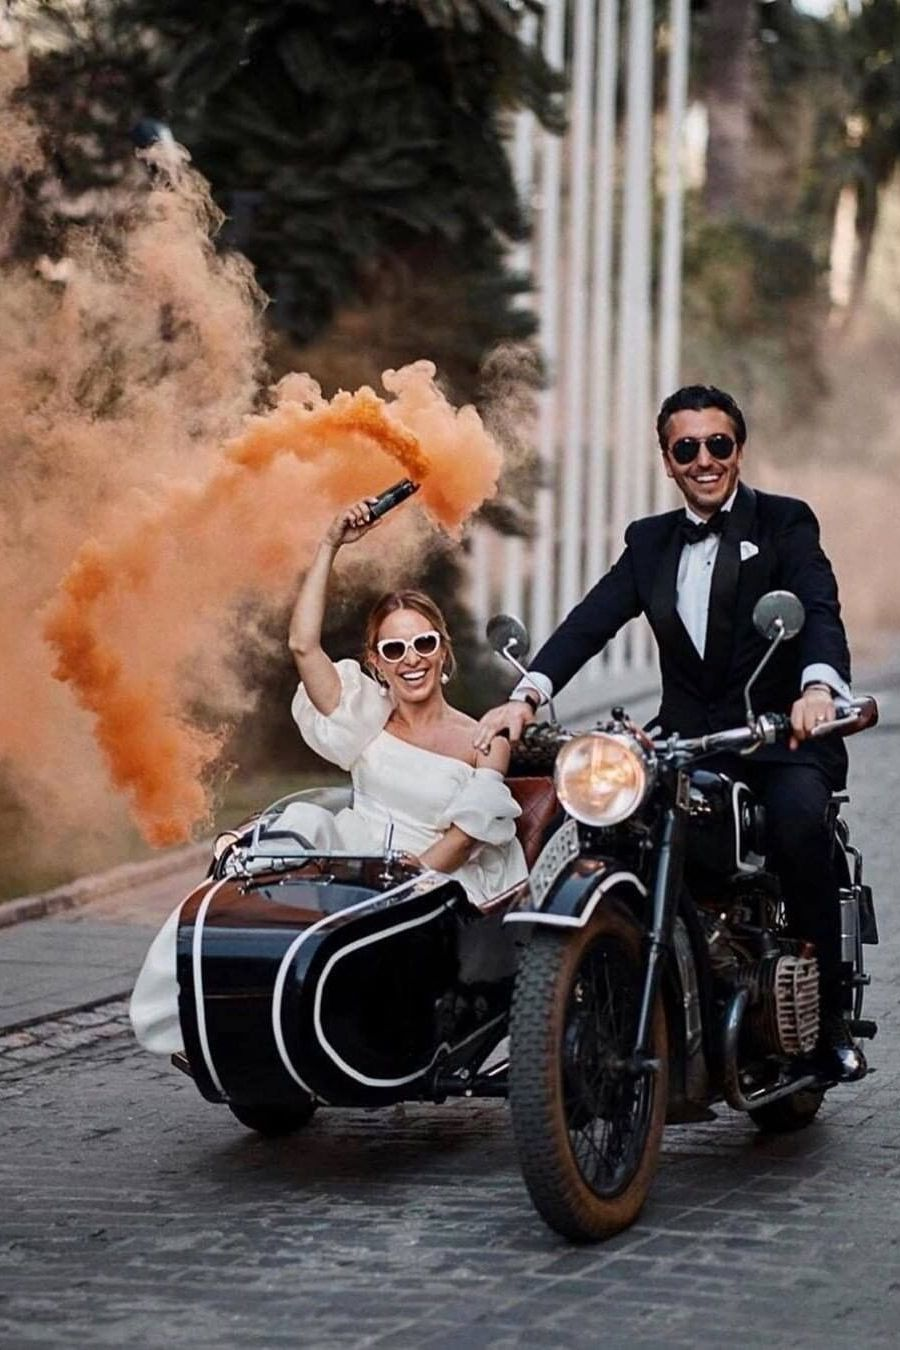 fun wedding photo ideas with smoke bombs